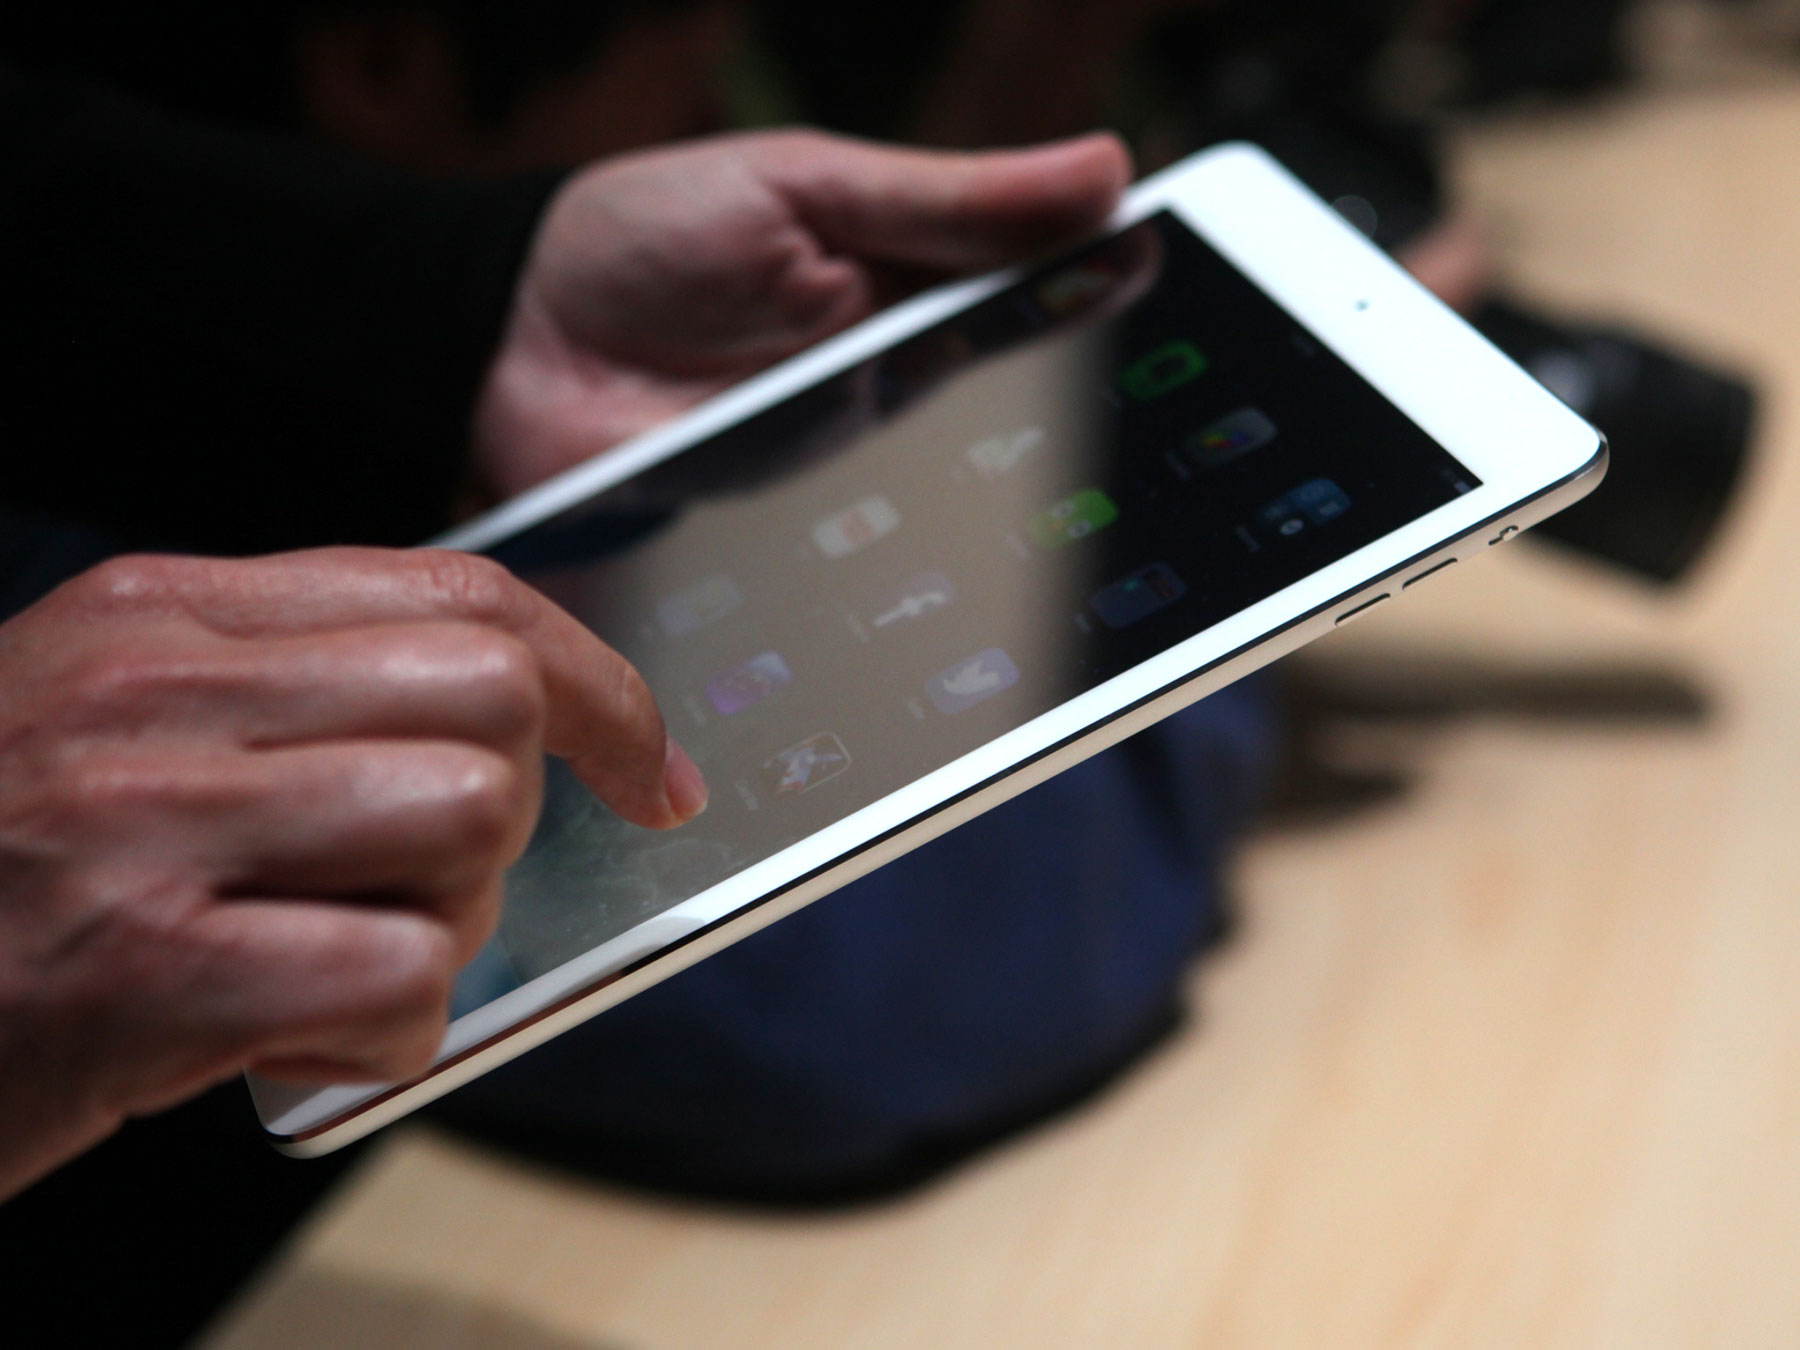 iPad Air on display at an Apple event in San Francisco on Oct. 22.